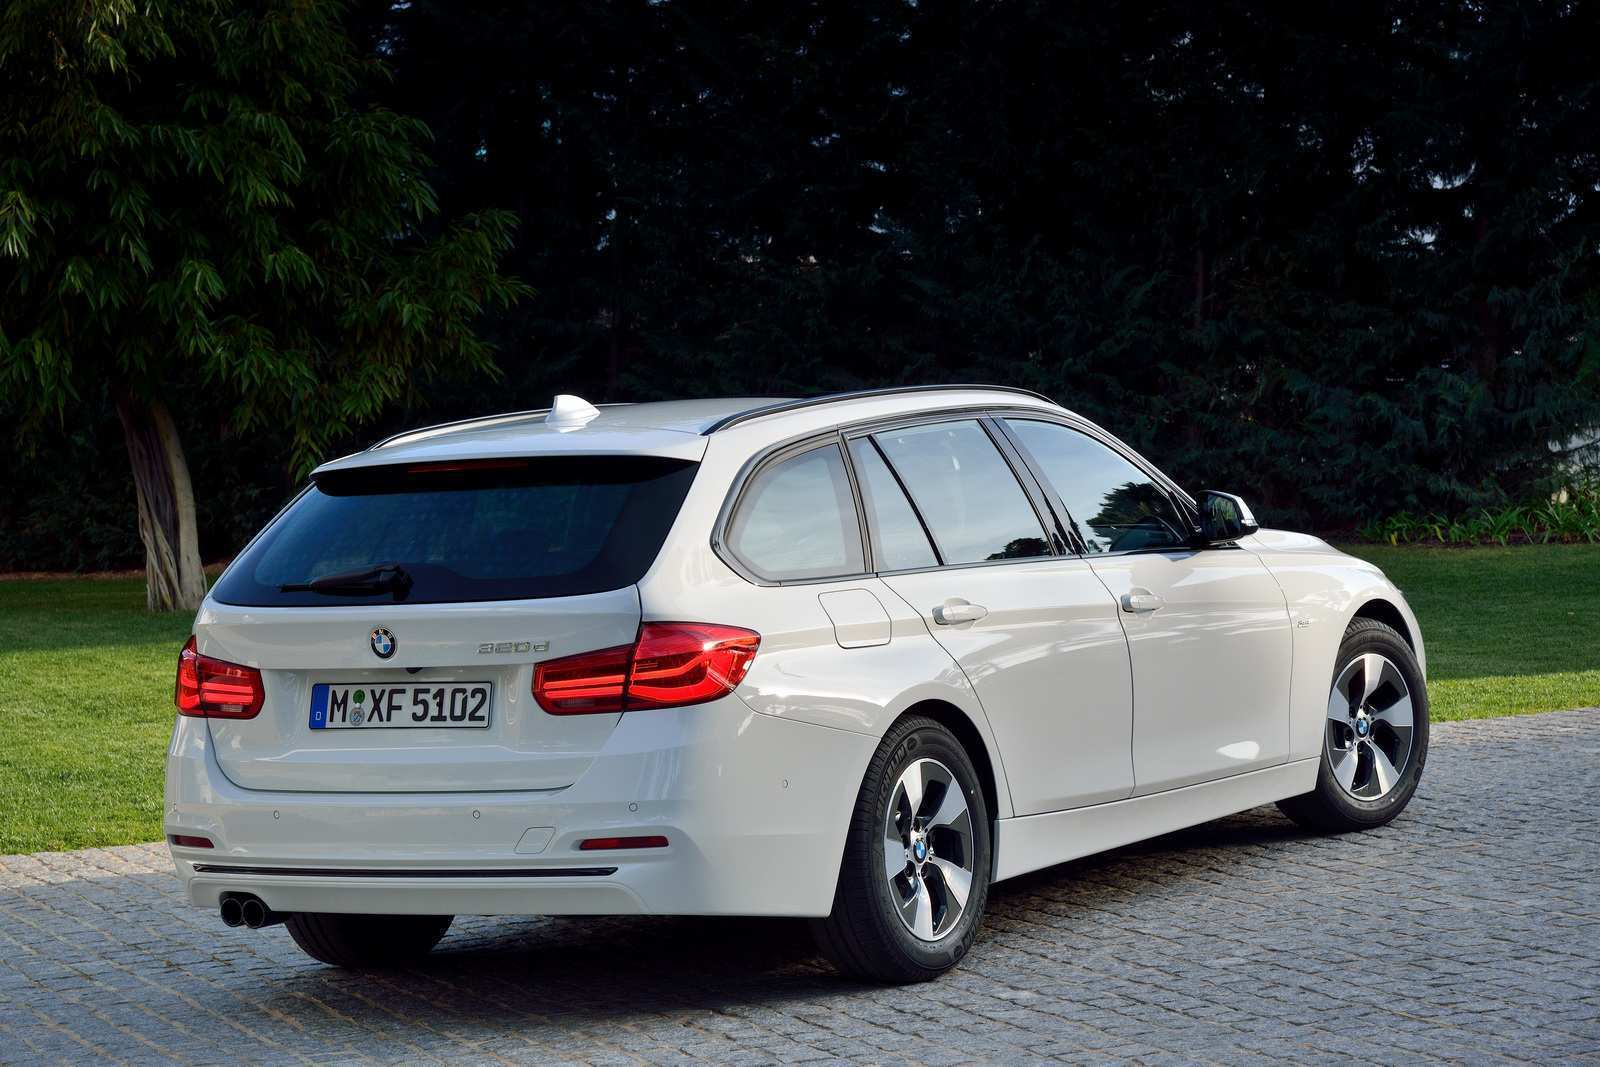 84 All New 2019 Bmw F31 Price Design And Review